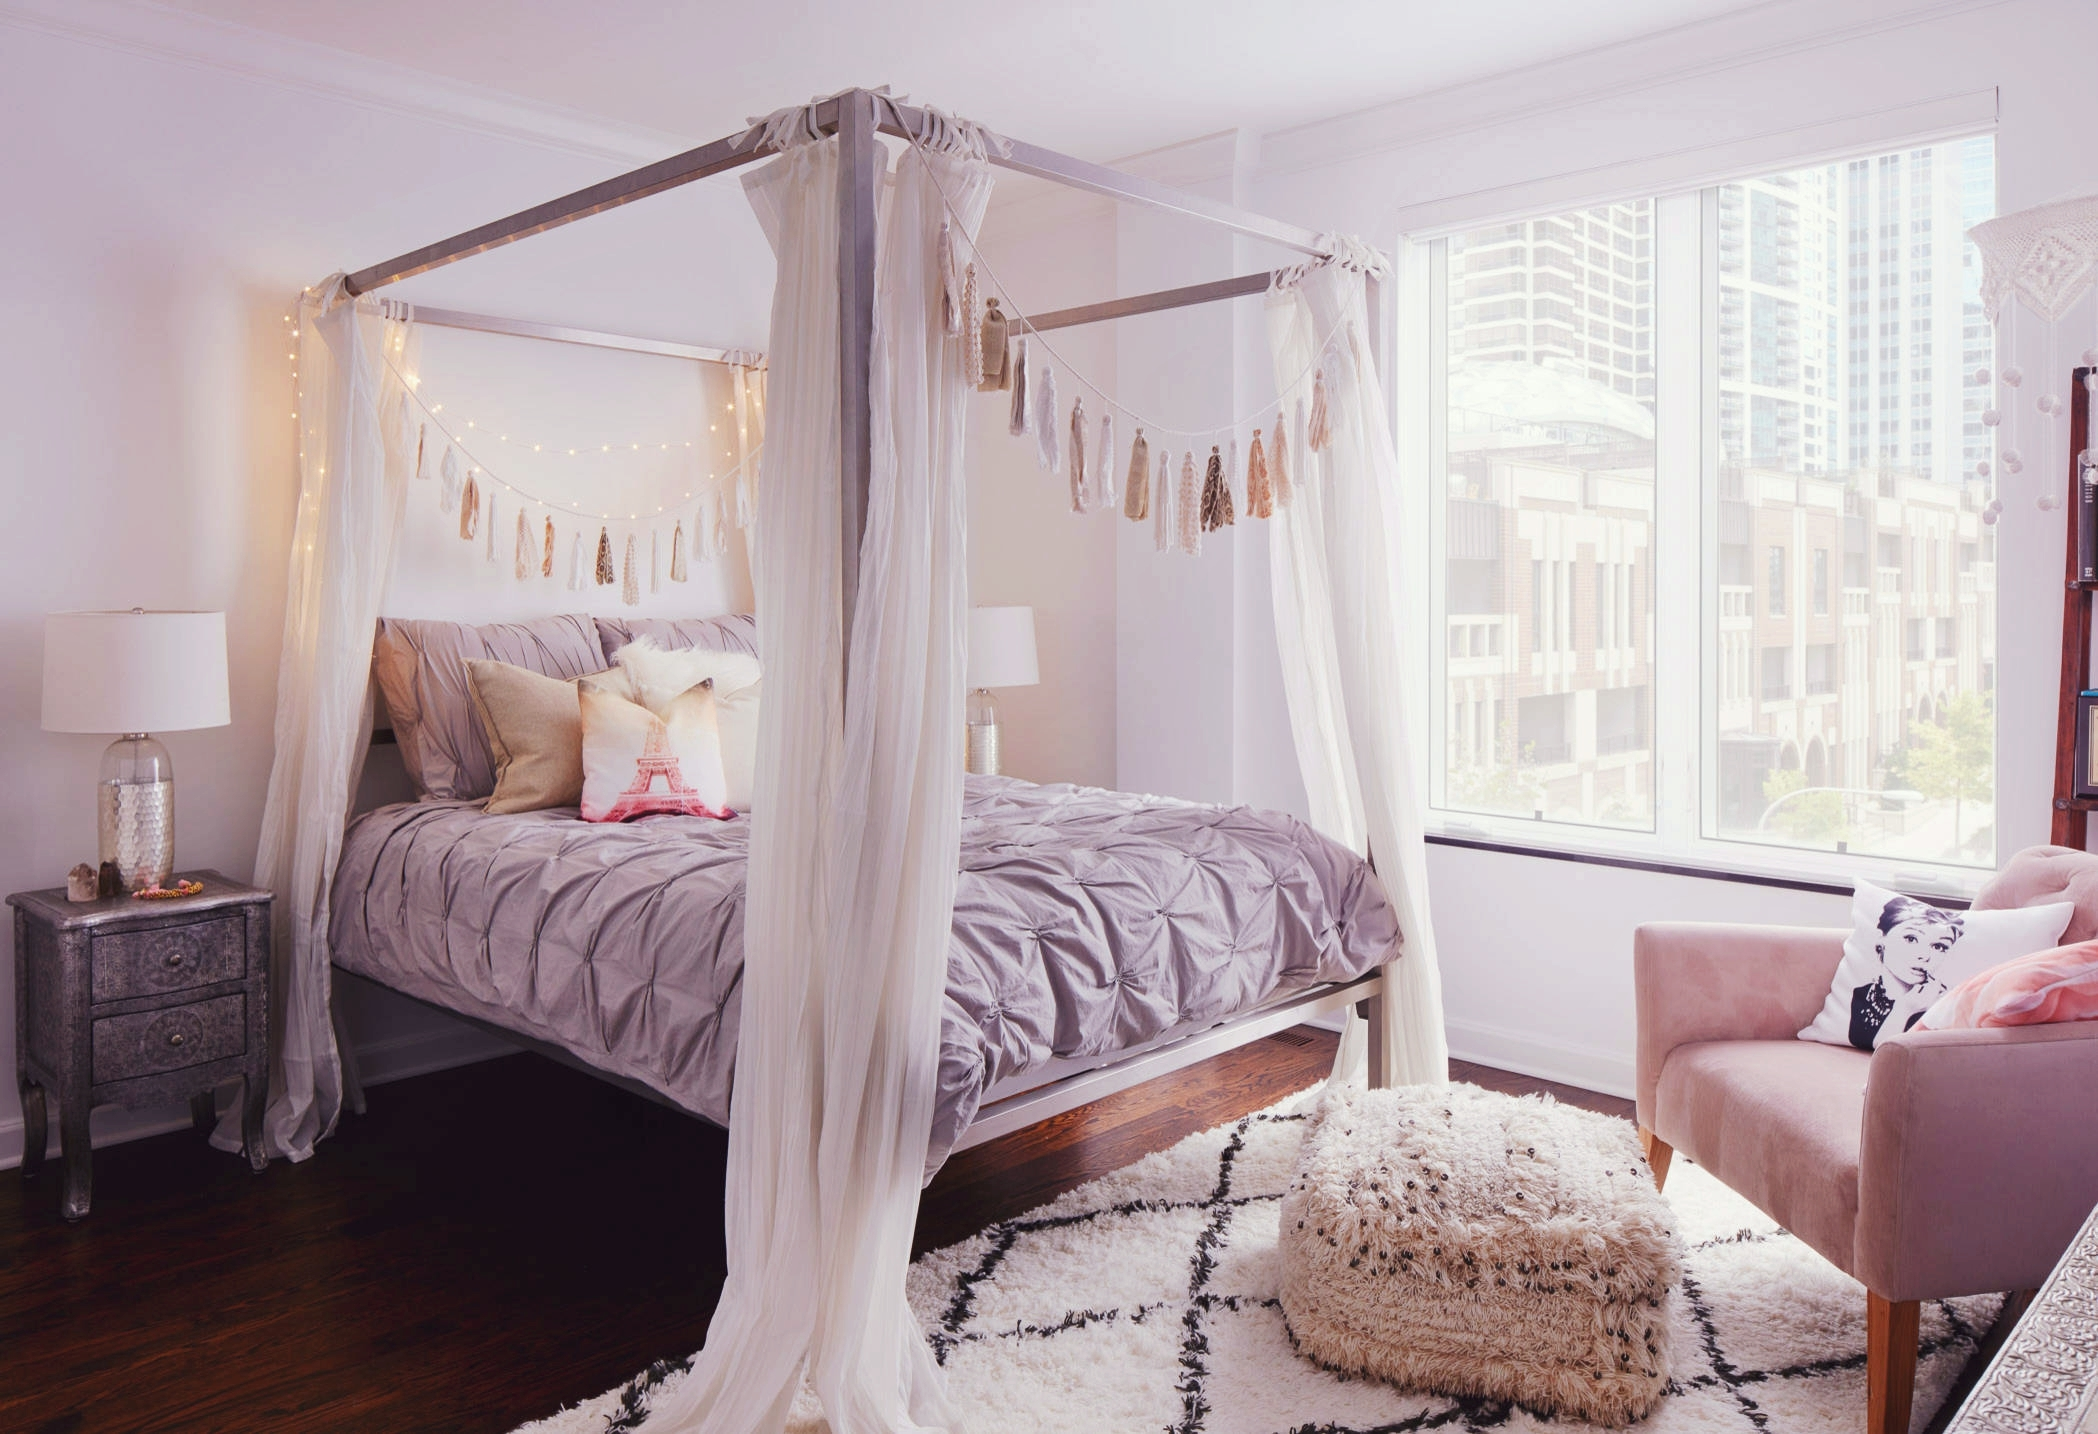 Bohemian Bedroom Inspiration Four Poster Beds With Boho Chic Vibes